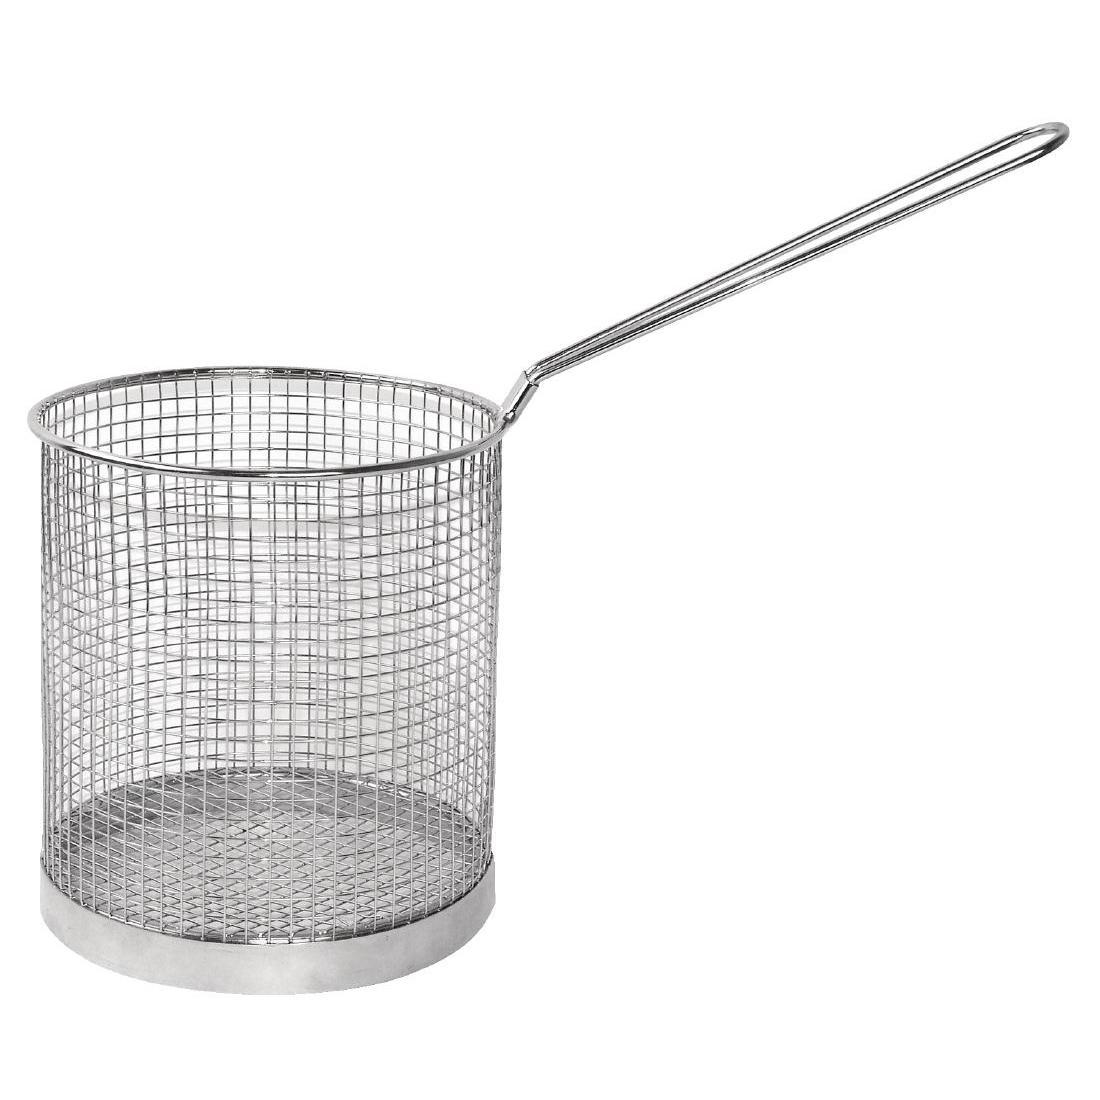 "Vogue Stainless Steel Spaghetti Basket 5.9"" - Each - J719"